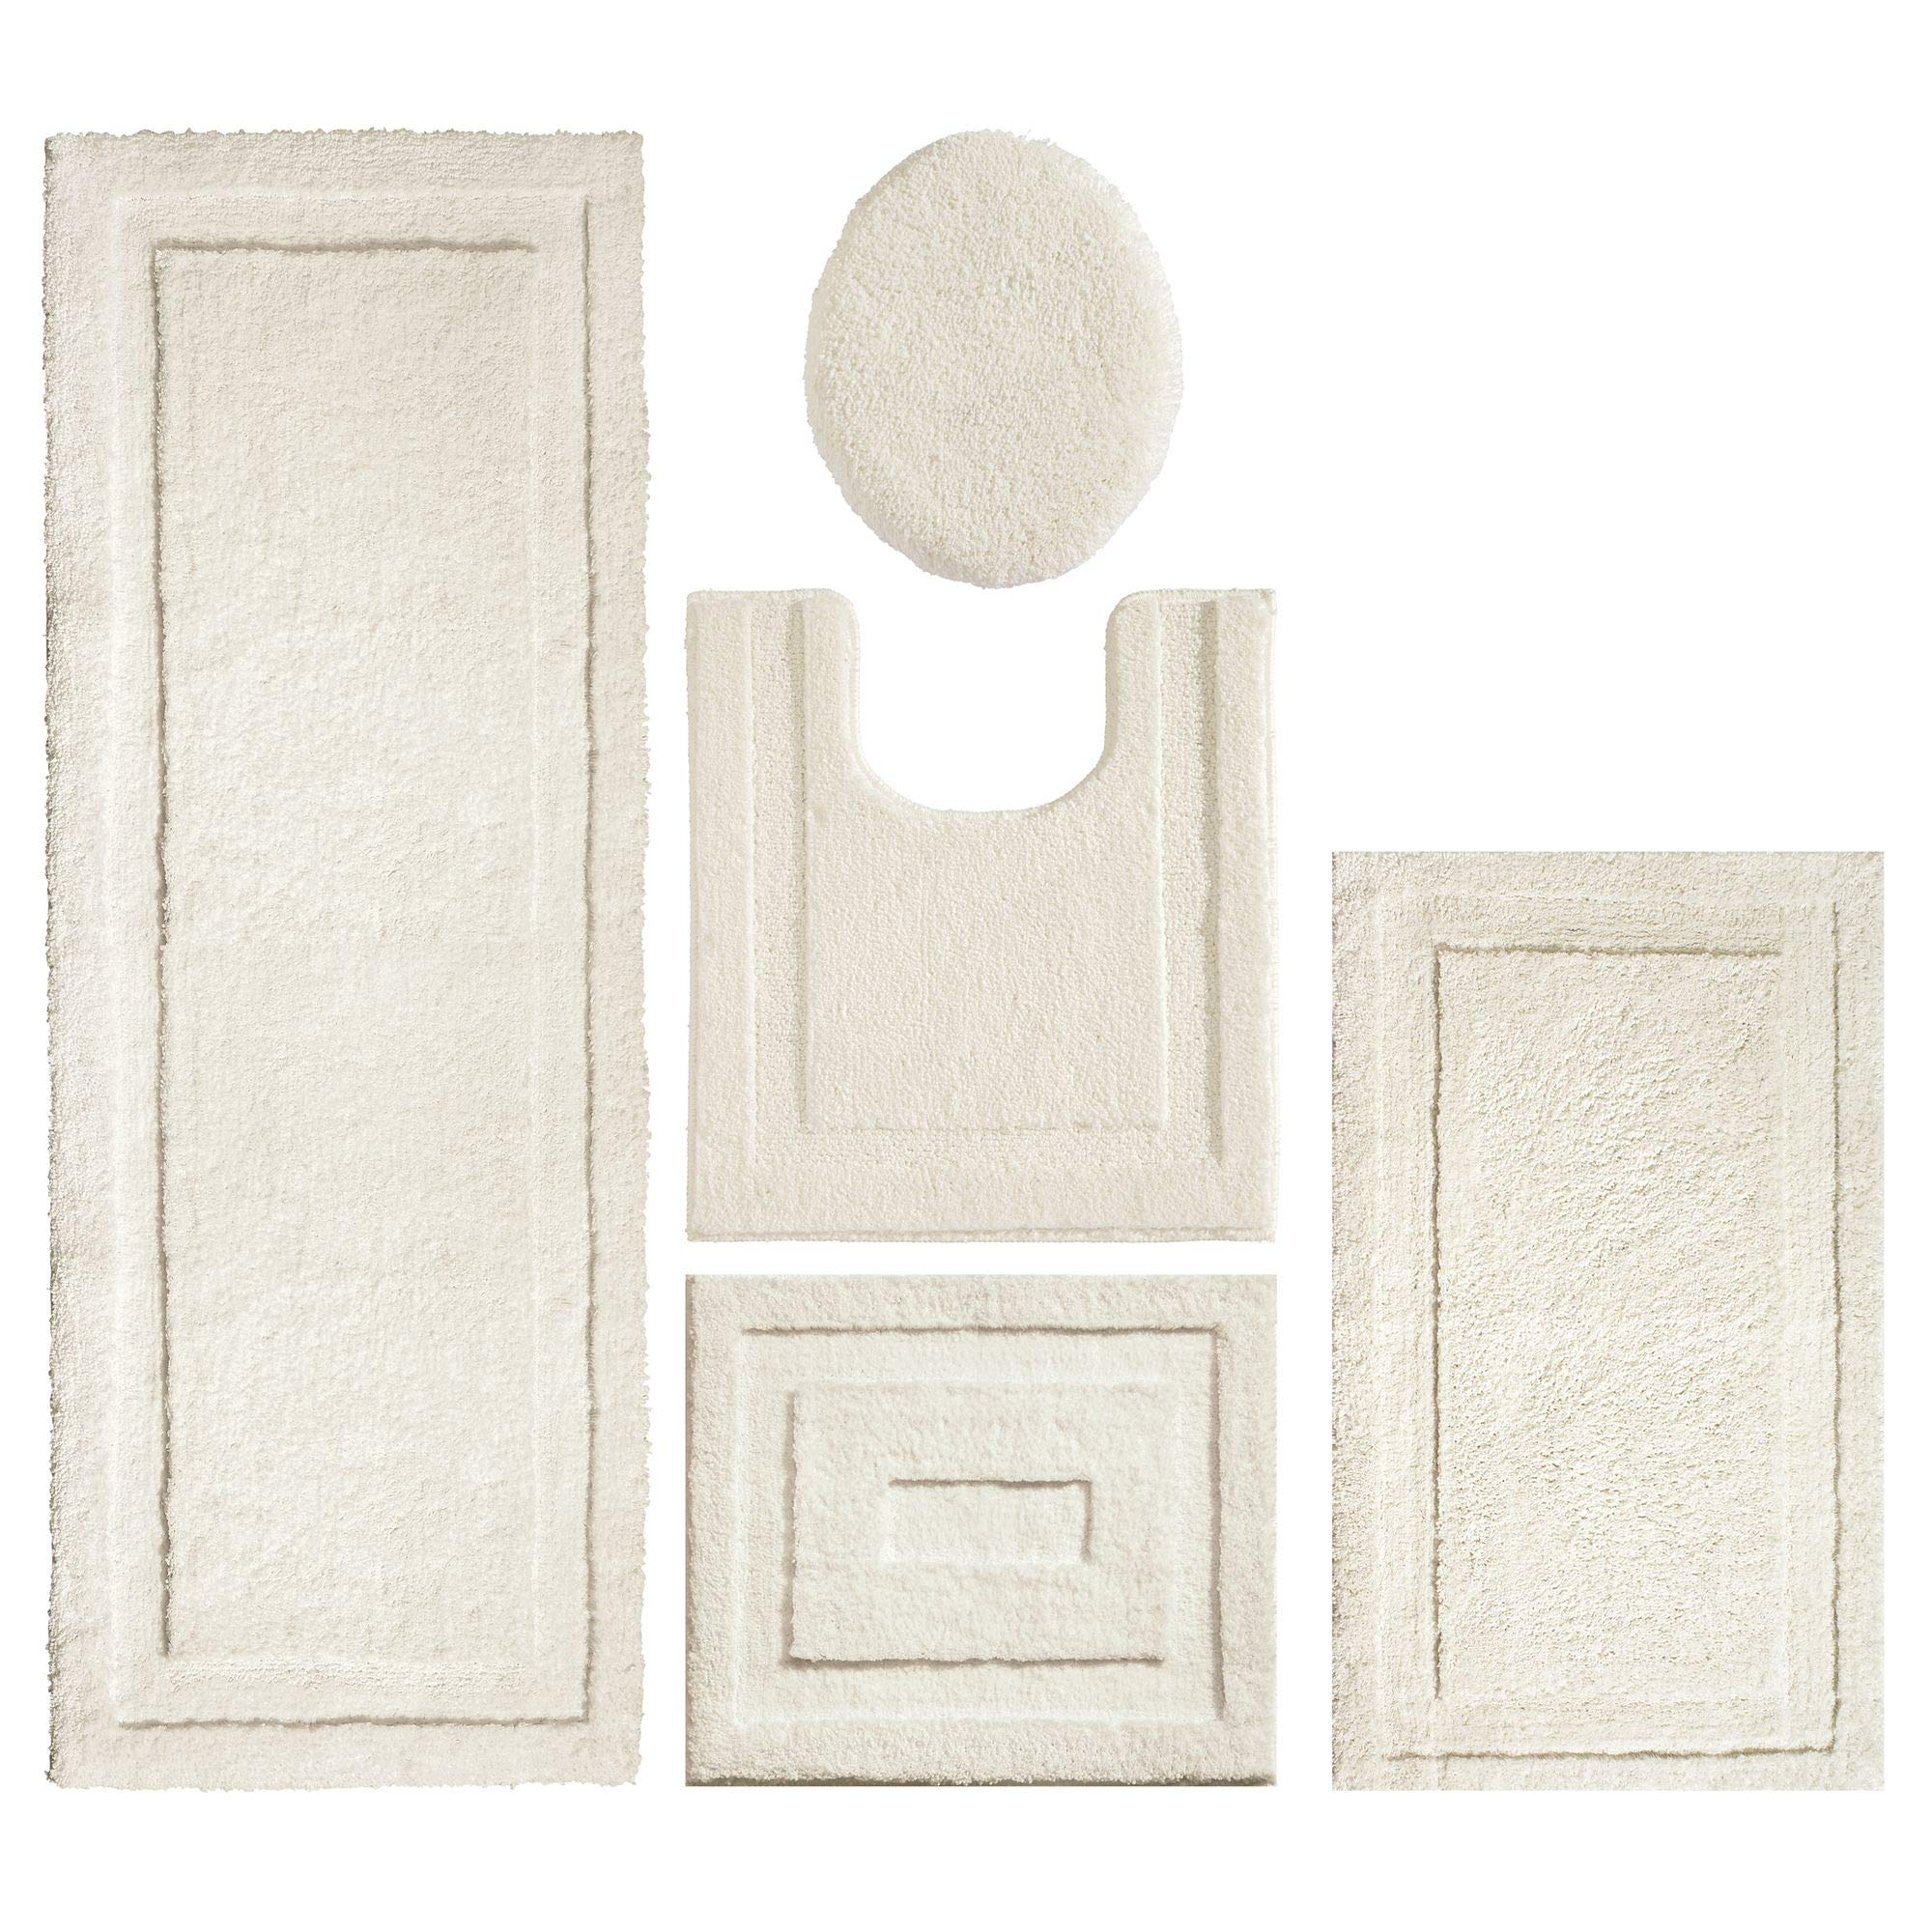 mDesign Soft Microfiber Polyester Bathroom Spa Rug Set - Water Absorbent, Machine Washable, Plush, Non-Slip - Includes 3 Rectangular Accent Rugs, Contour Mat, Toilet Lid Cover - Set of 5, Ivory